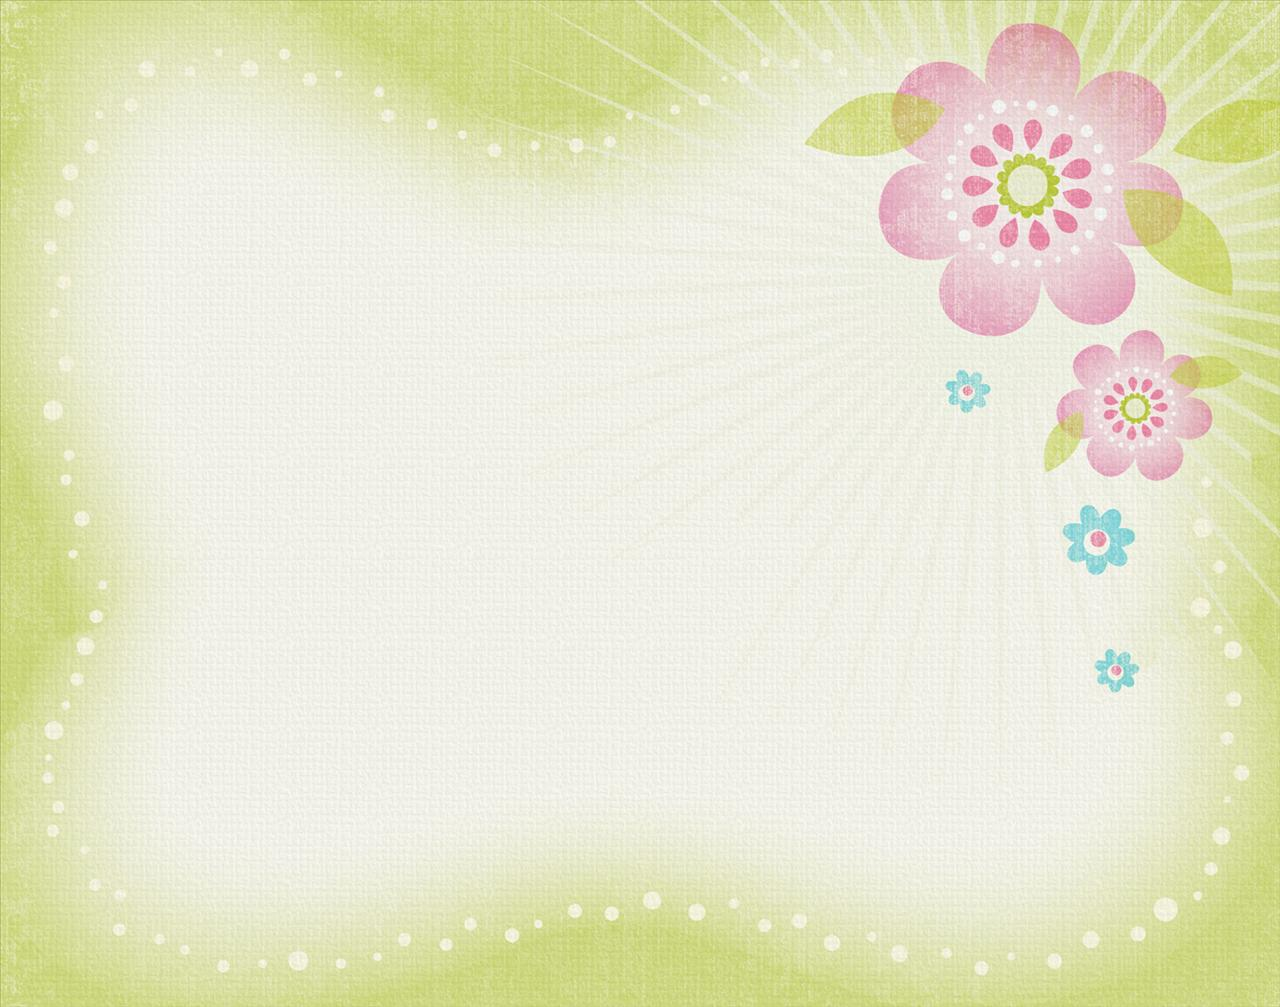 Spring Flower Floral Backgrounds